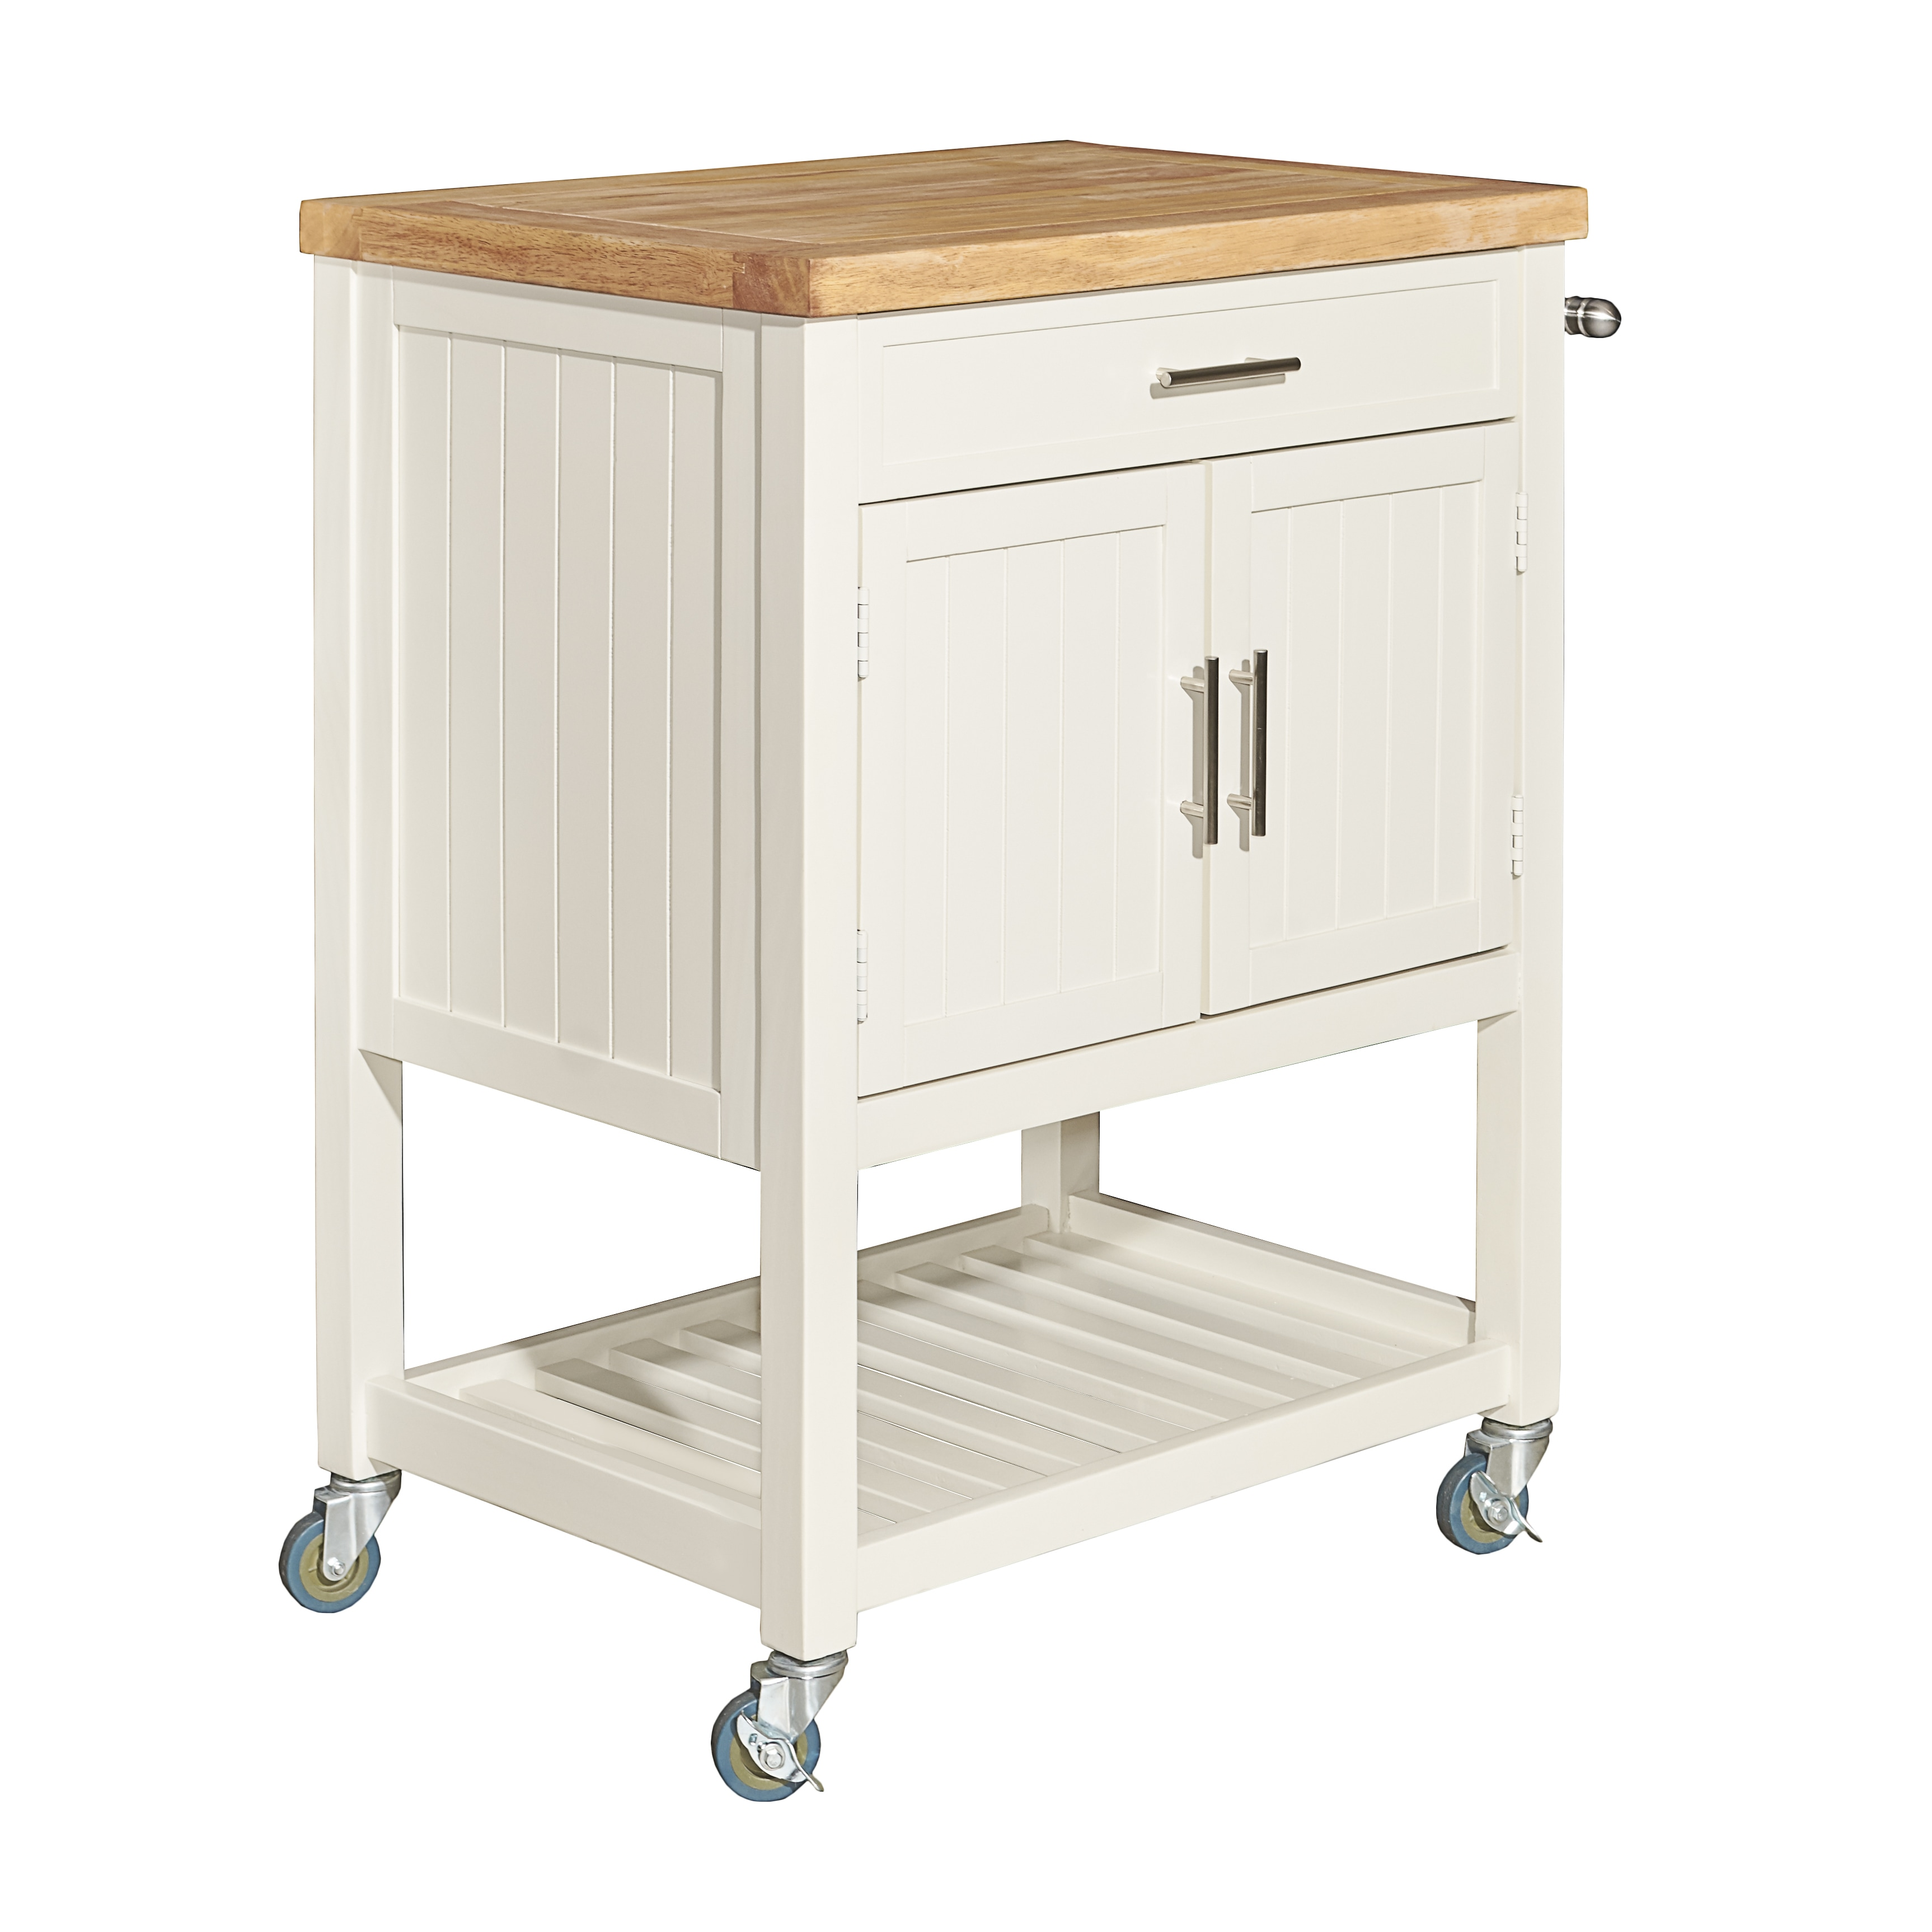 Shop carbon loft gunnerman white kitchen cart on sale free shipping today overstock com 21015586